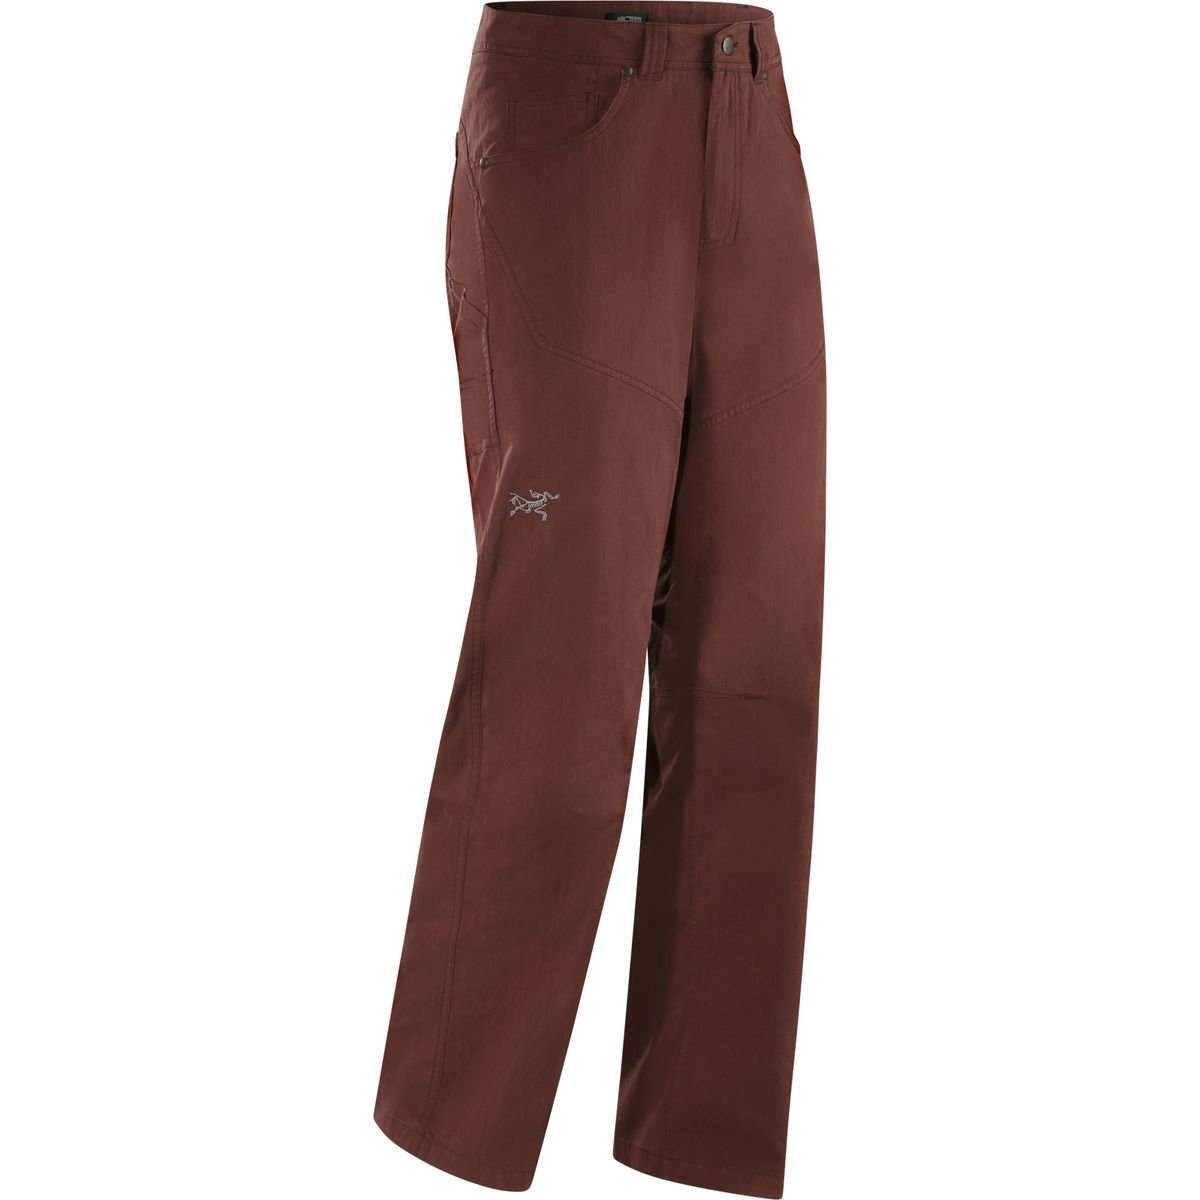 Bastion Pant – Men 's by Arcteryx B00YXXG9BO 36W x 32L|レッドウッド レッドウッド 36W x 32L